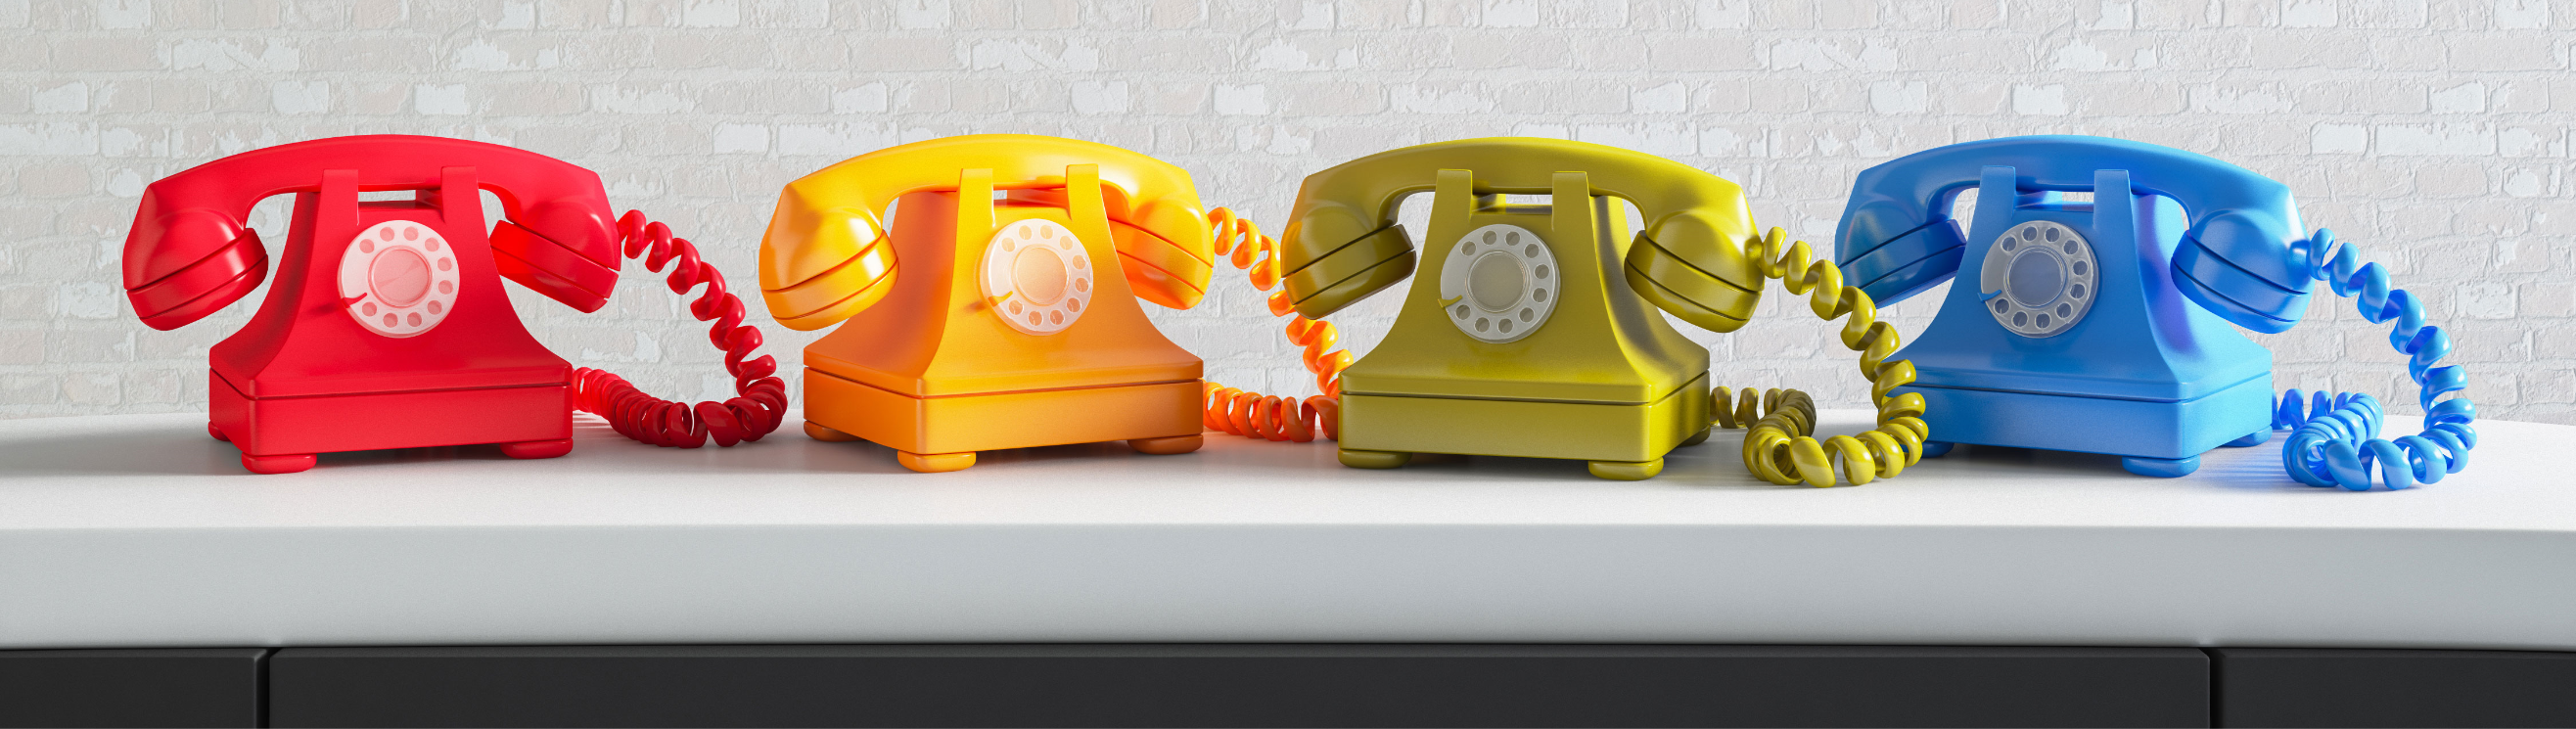 Colourful telephones